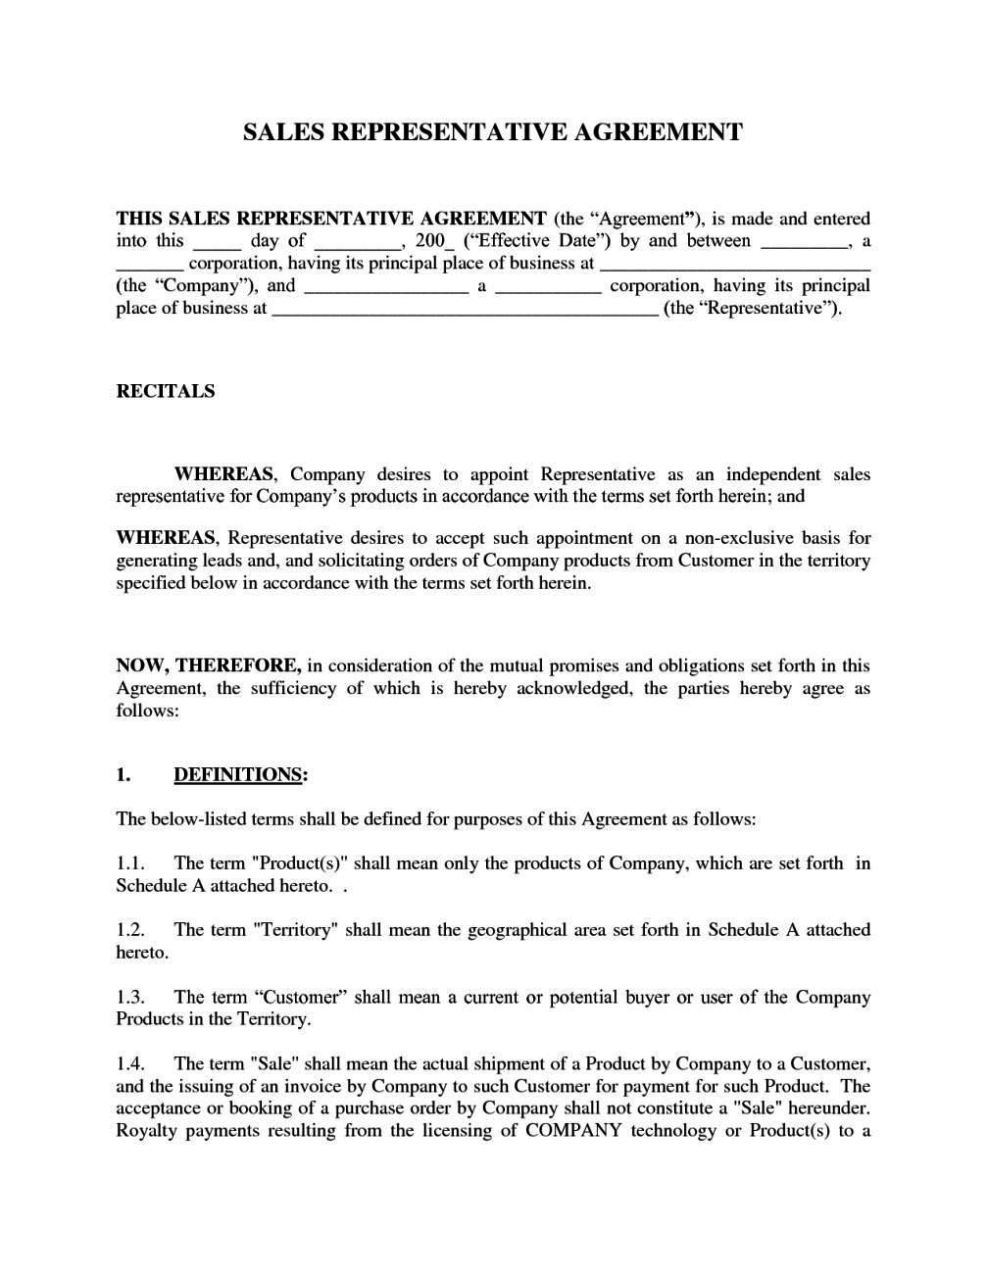 Sales representative contract template sampletemplatess for Sales rep contract template